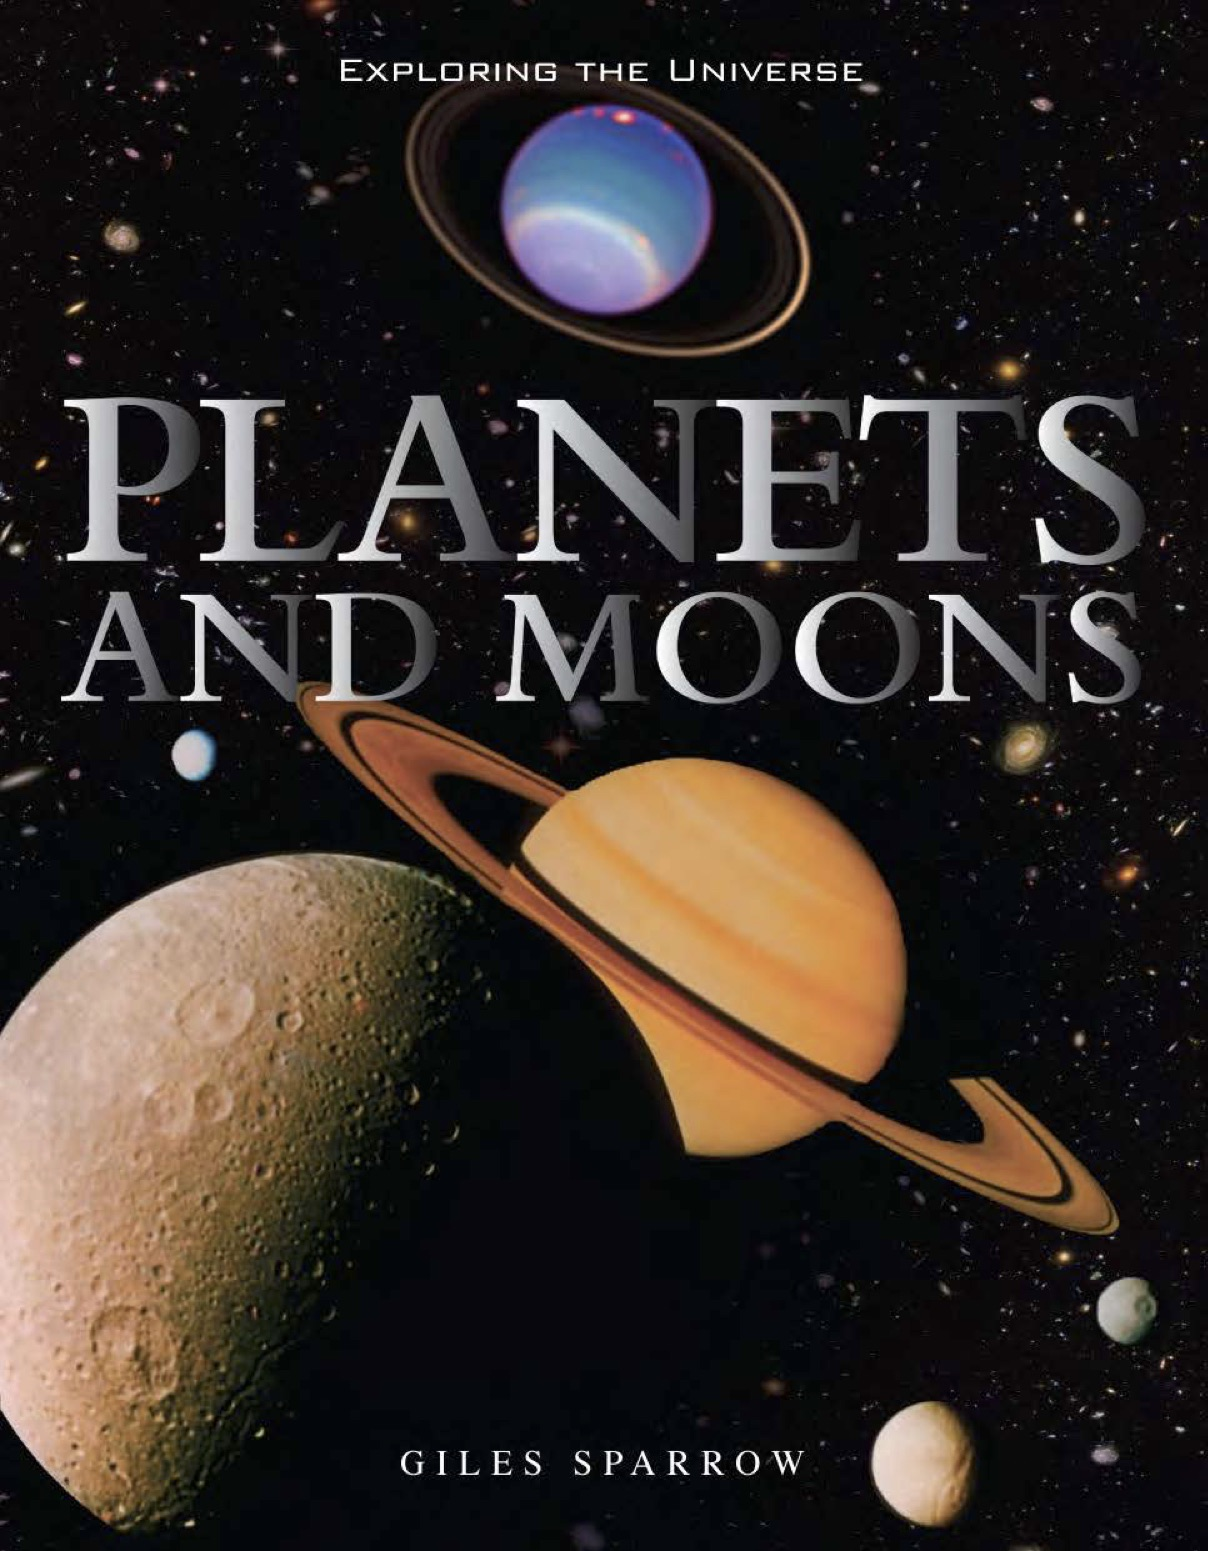 Exploring the Universe: Planets and Moons